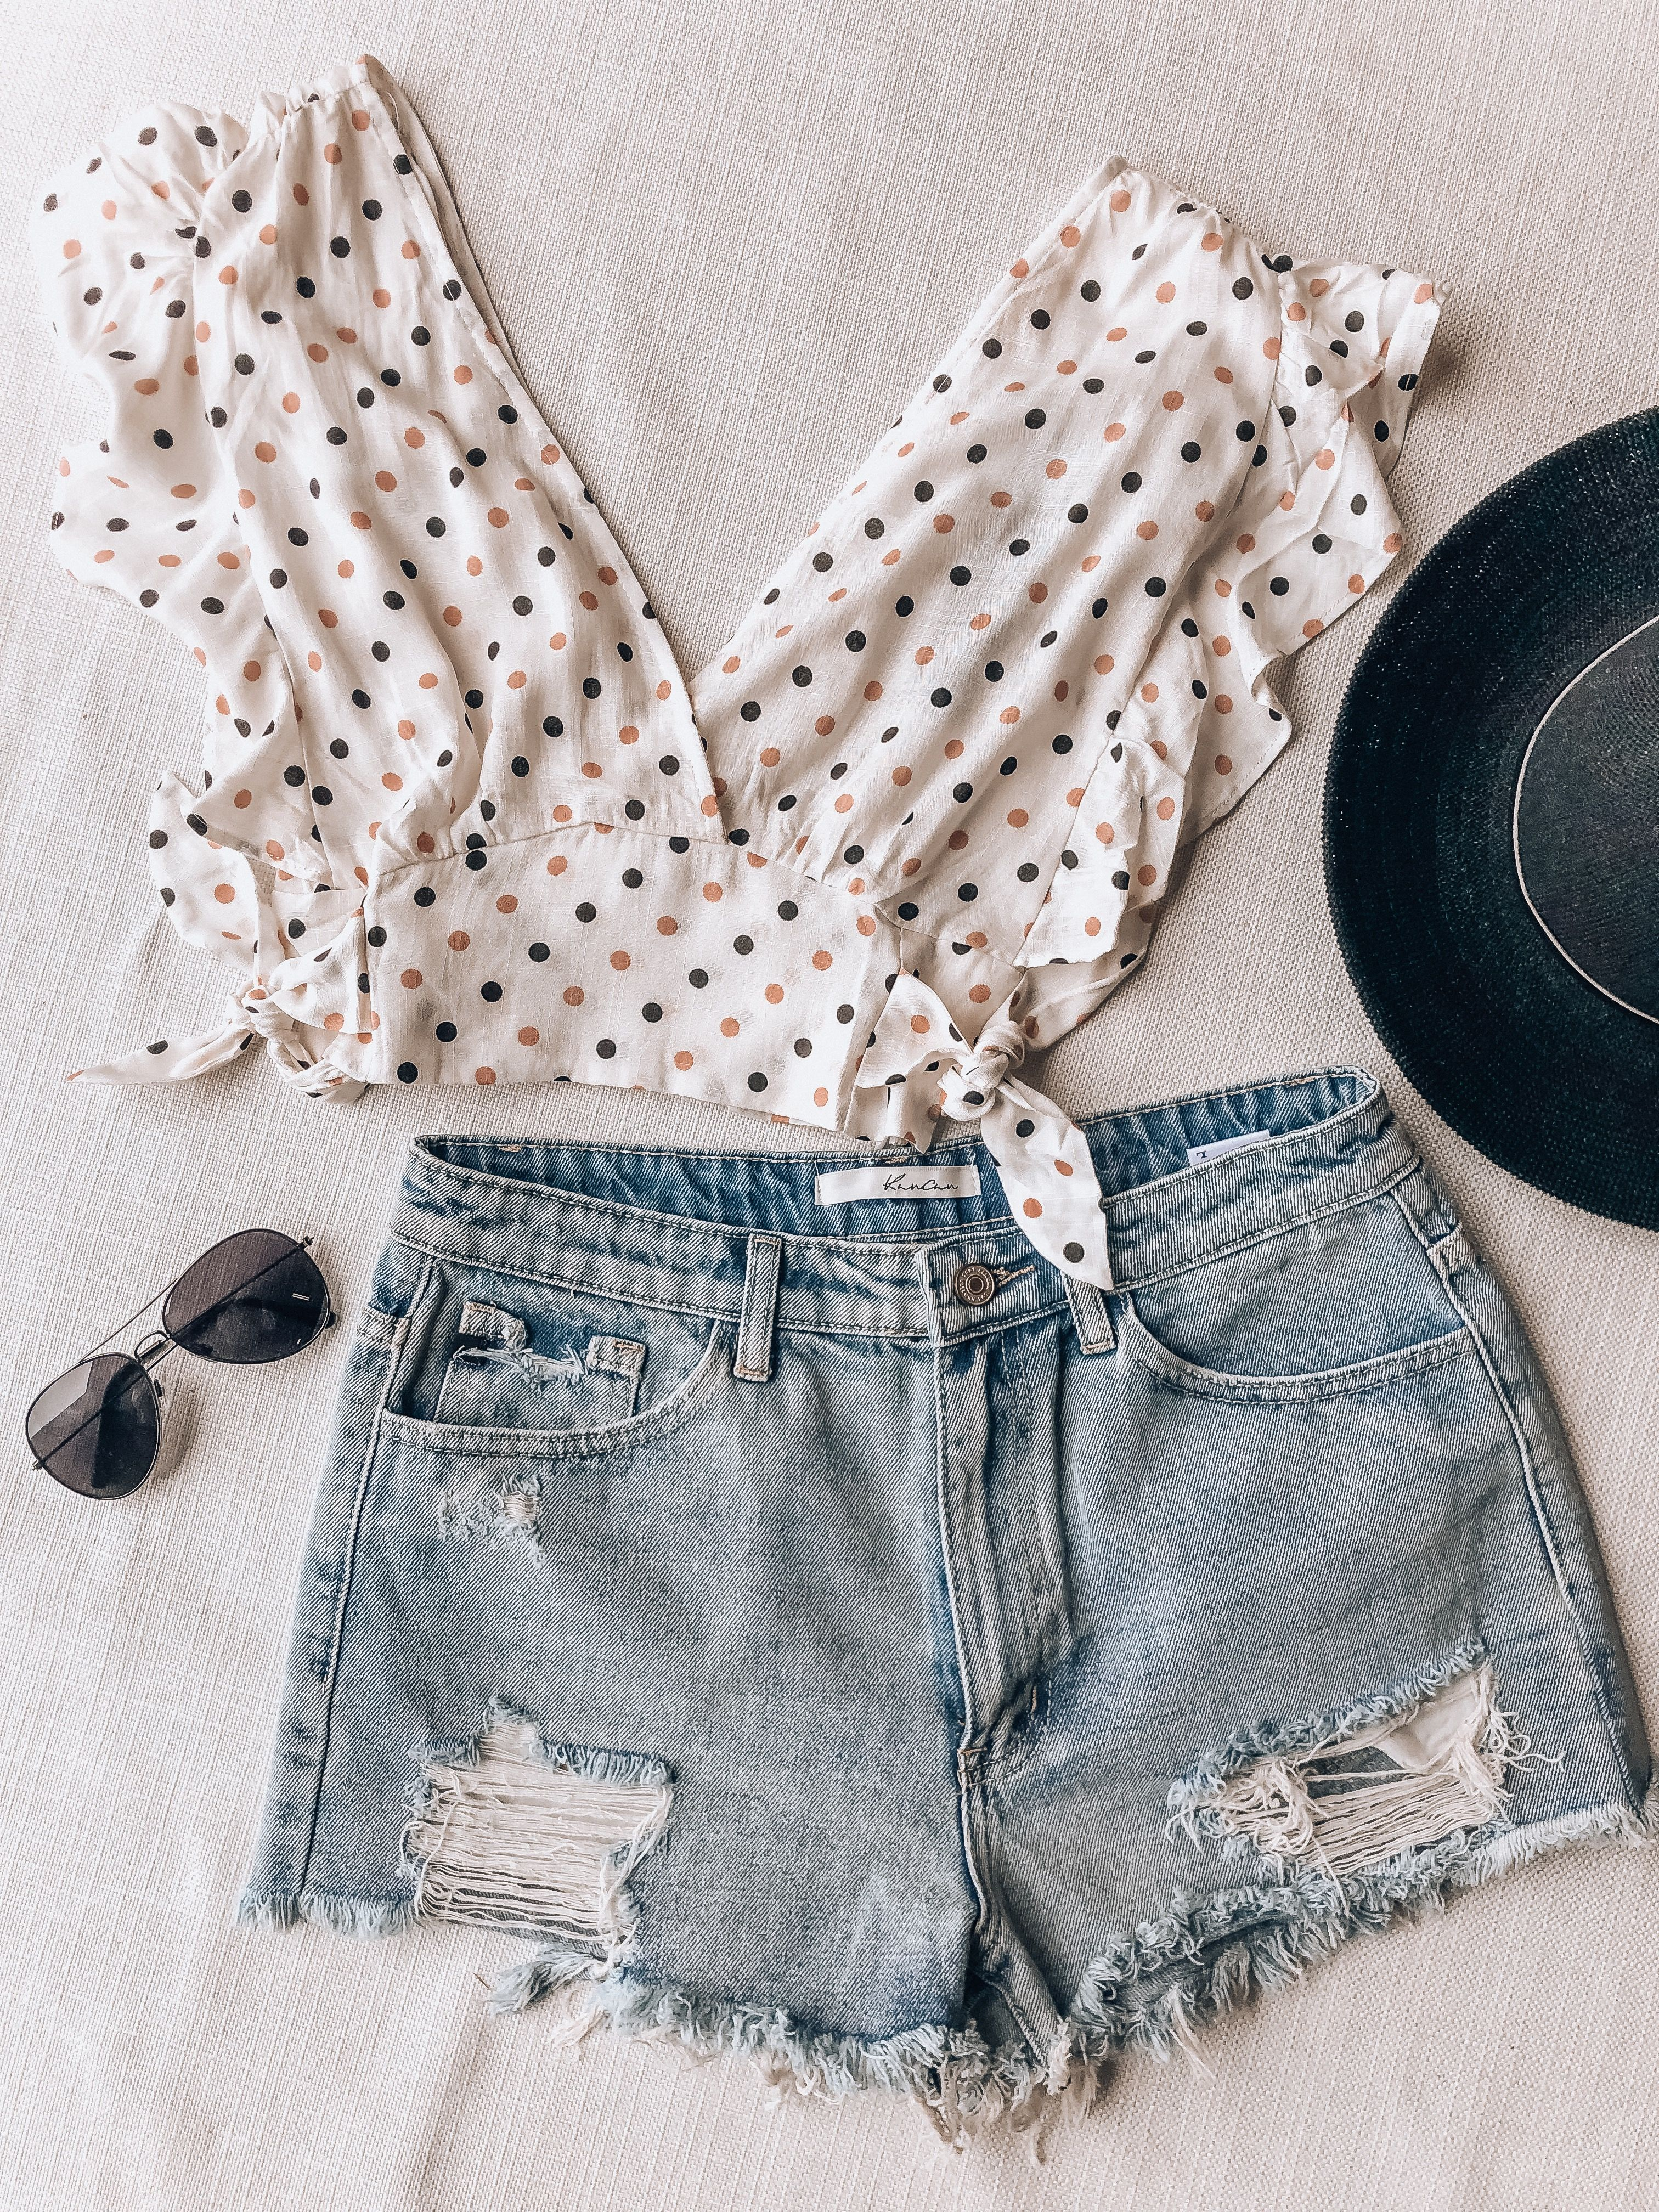 summer festival outfit